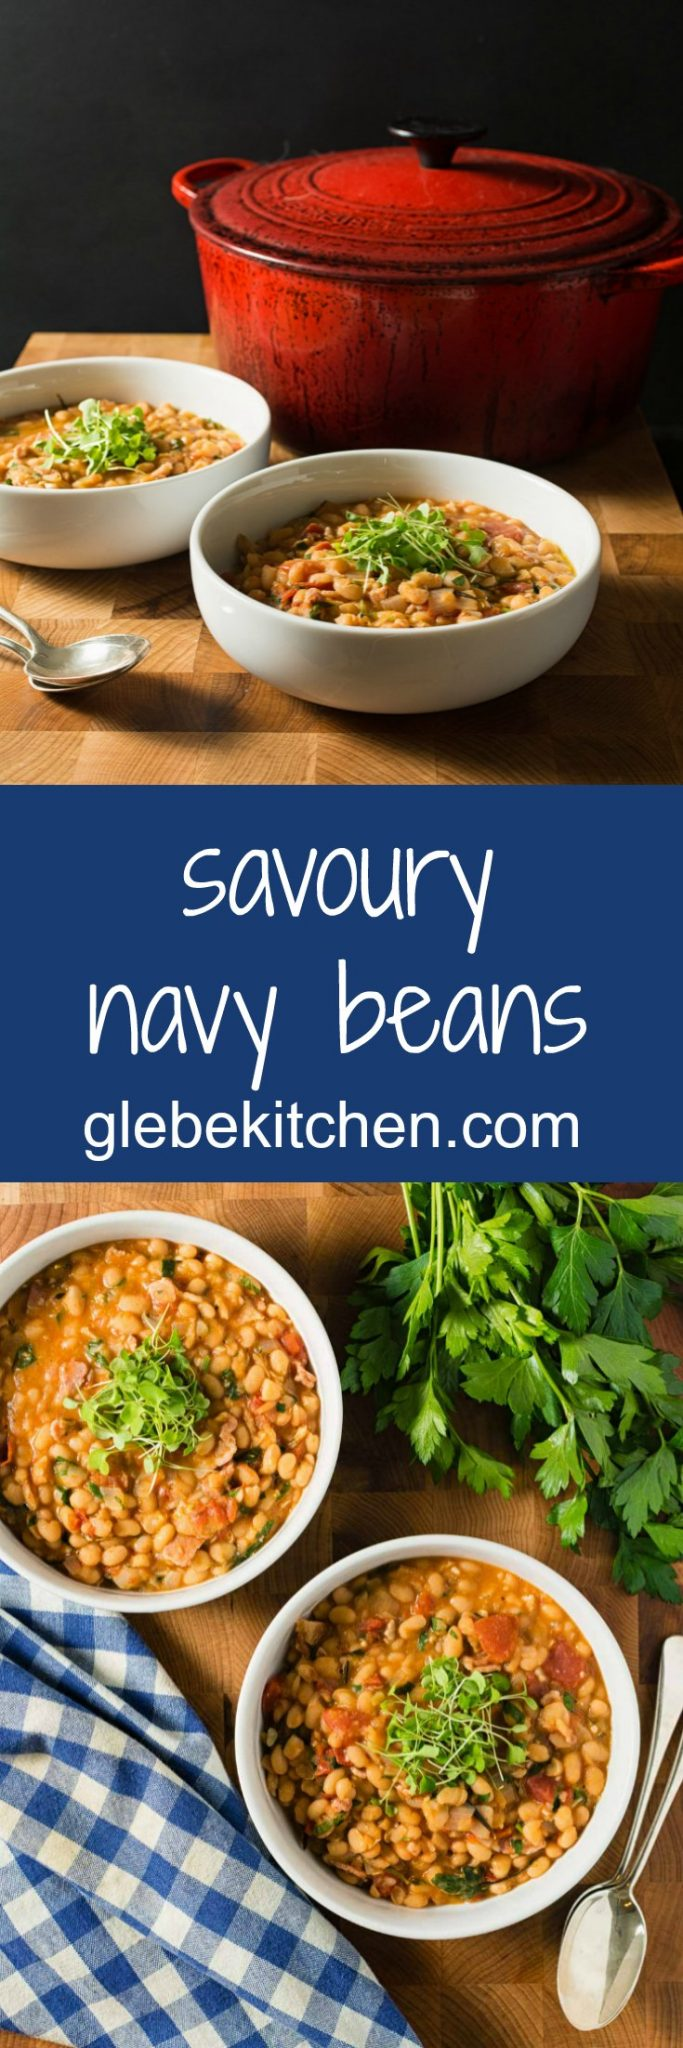 Rosemary, thyme, parsley, onion and garlic all come together in this warming and deeply satisfying savory navy bean stew.